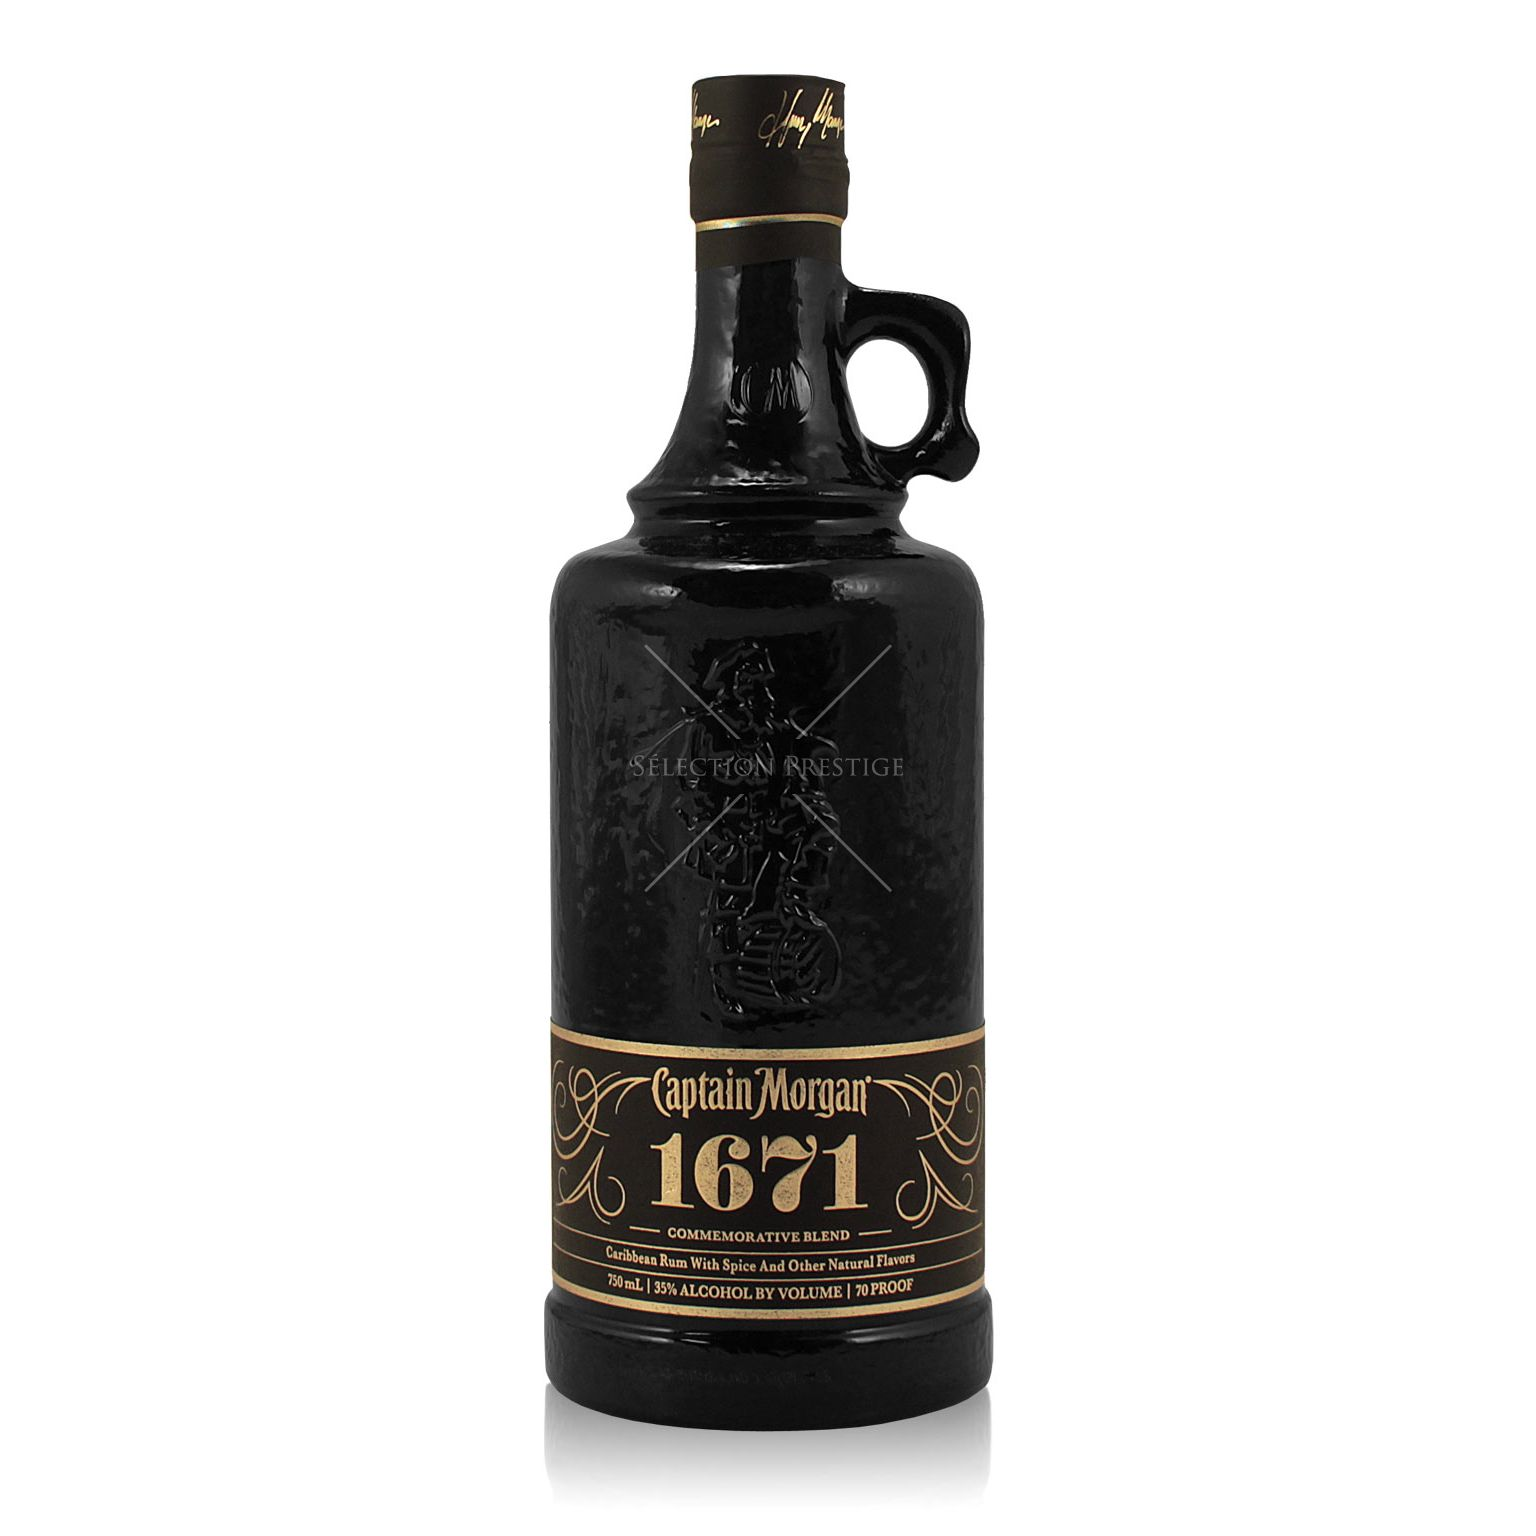 Captain Morgan 1671 Commemorative Blend Limited Edition